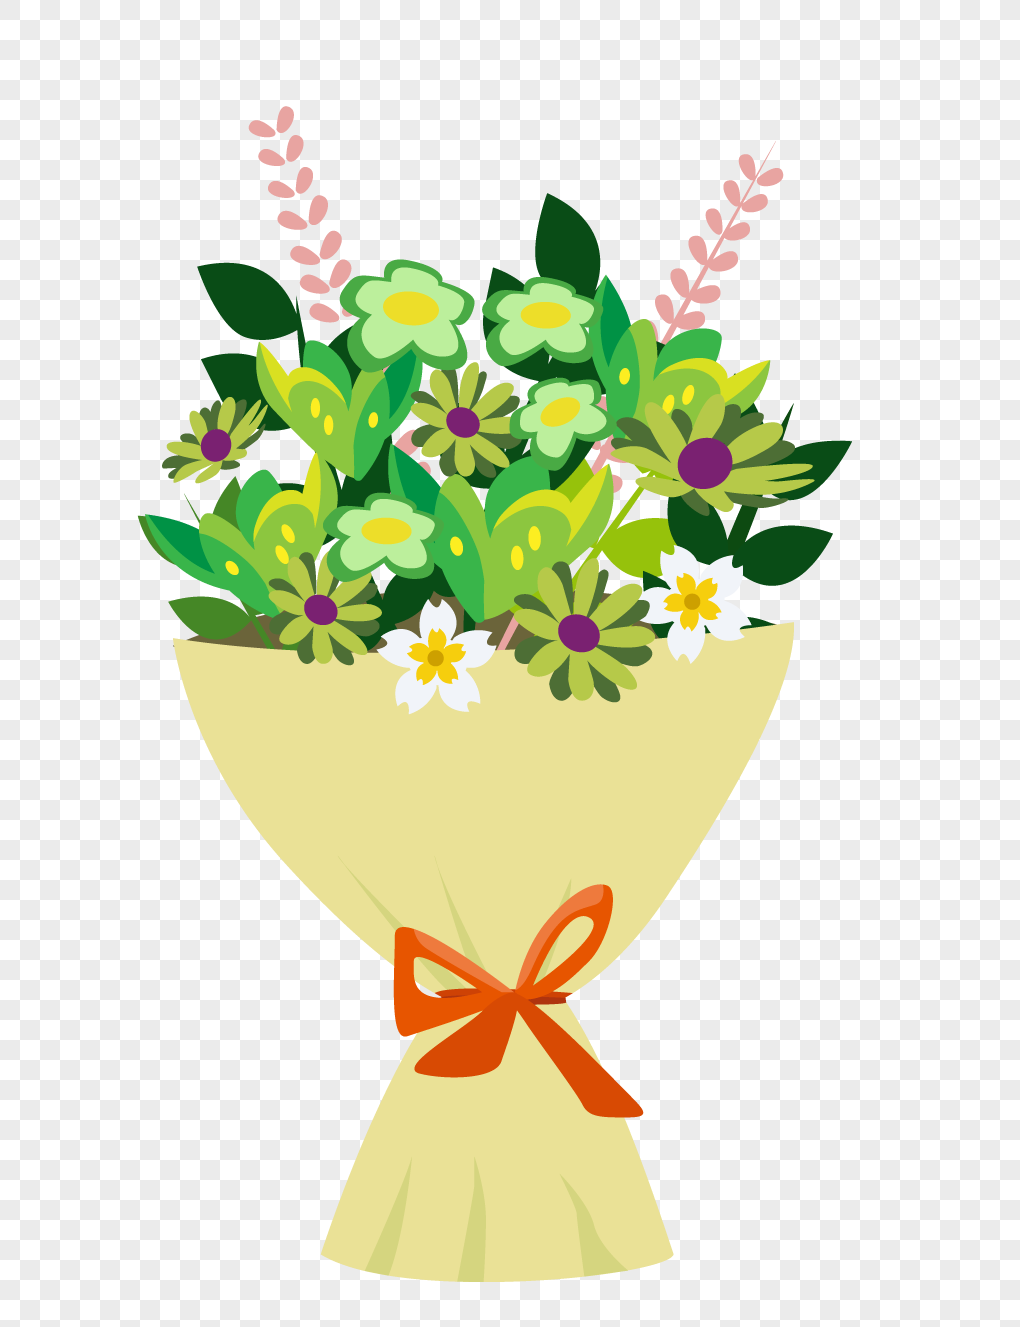 Flower Bouquet Png Free Flowers Healthy